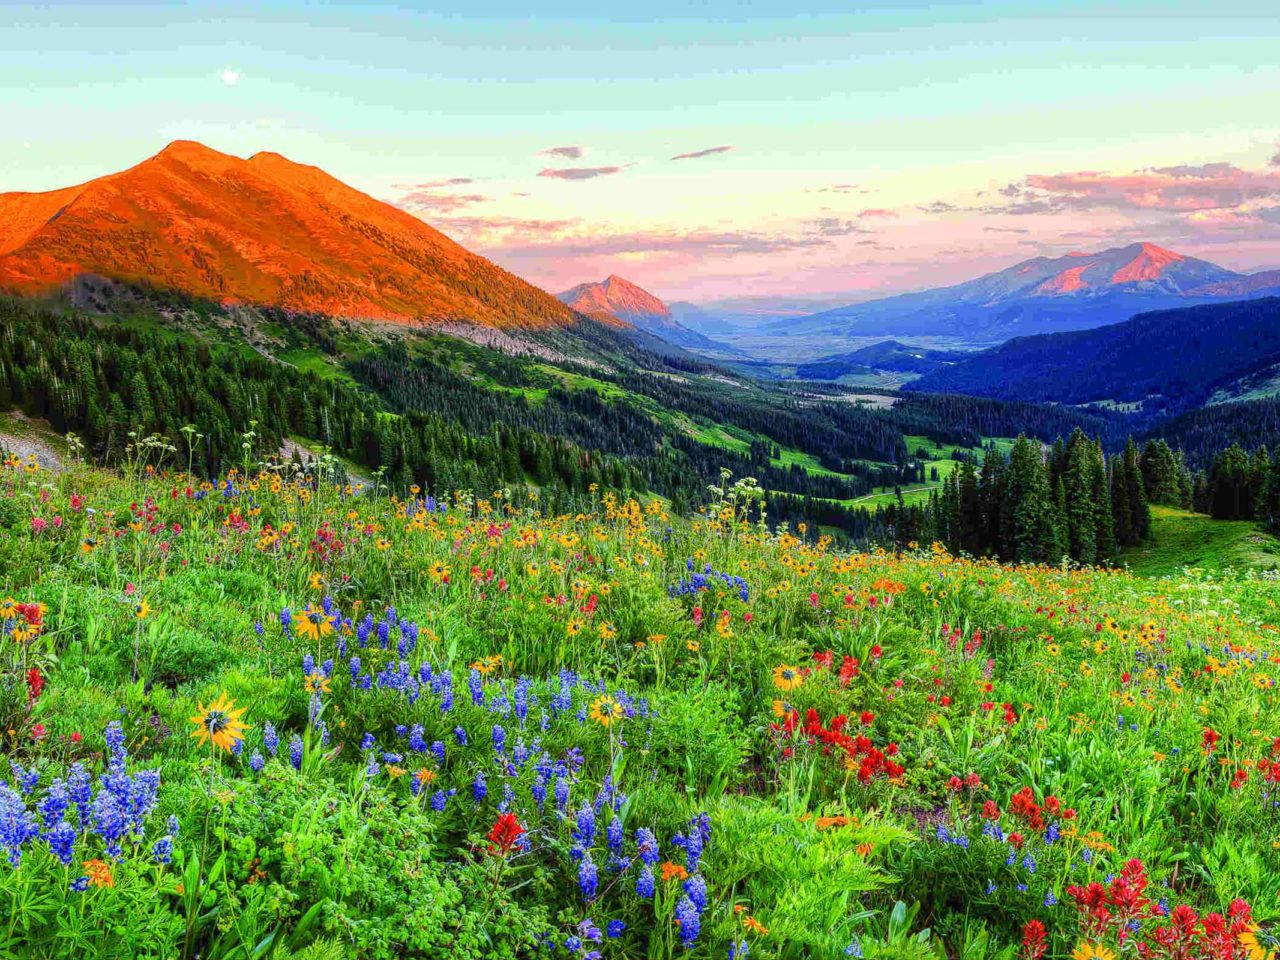 Fall Mountains Iphone Wallpaper Crested Butte Colorado Wild Spring Flowers Landscape